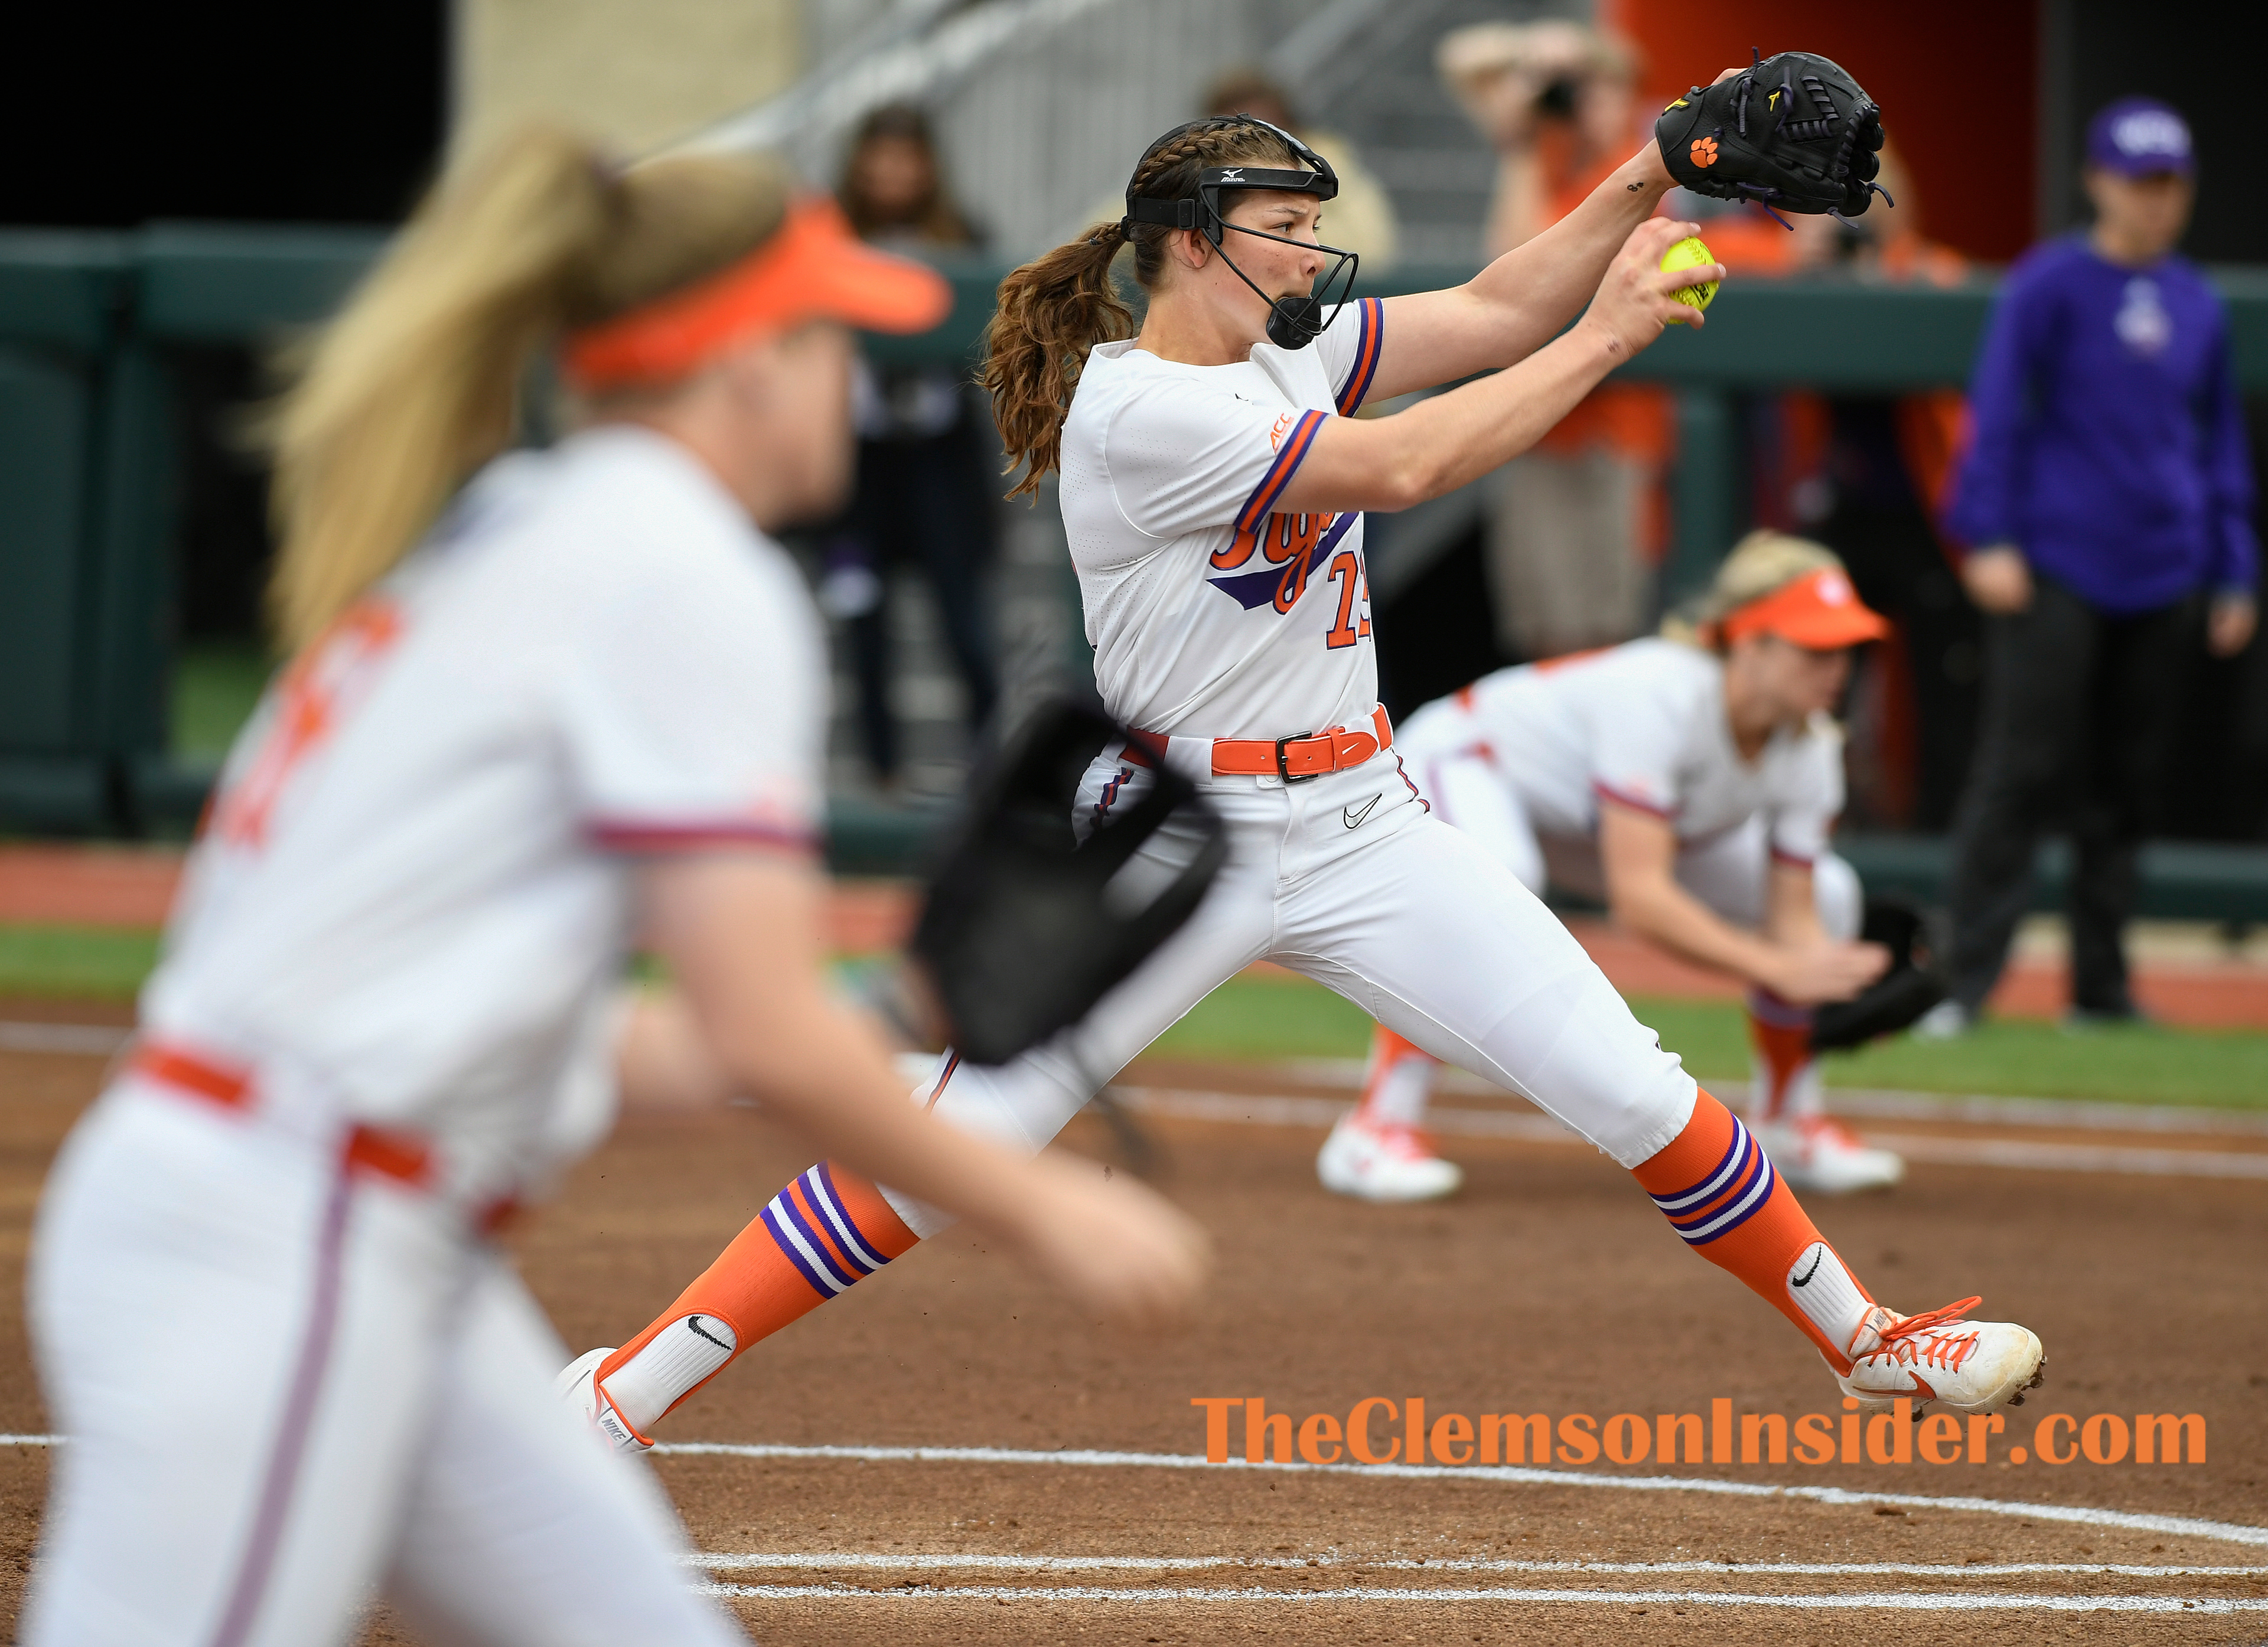 Clemson's Valerie Cagle (72) pitches against Western Carolina Wednesday, January 12, 2020 at Clemson's Softball Stadium. Bart Boatwright/The Clemson Insider